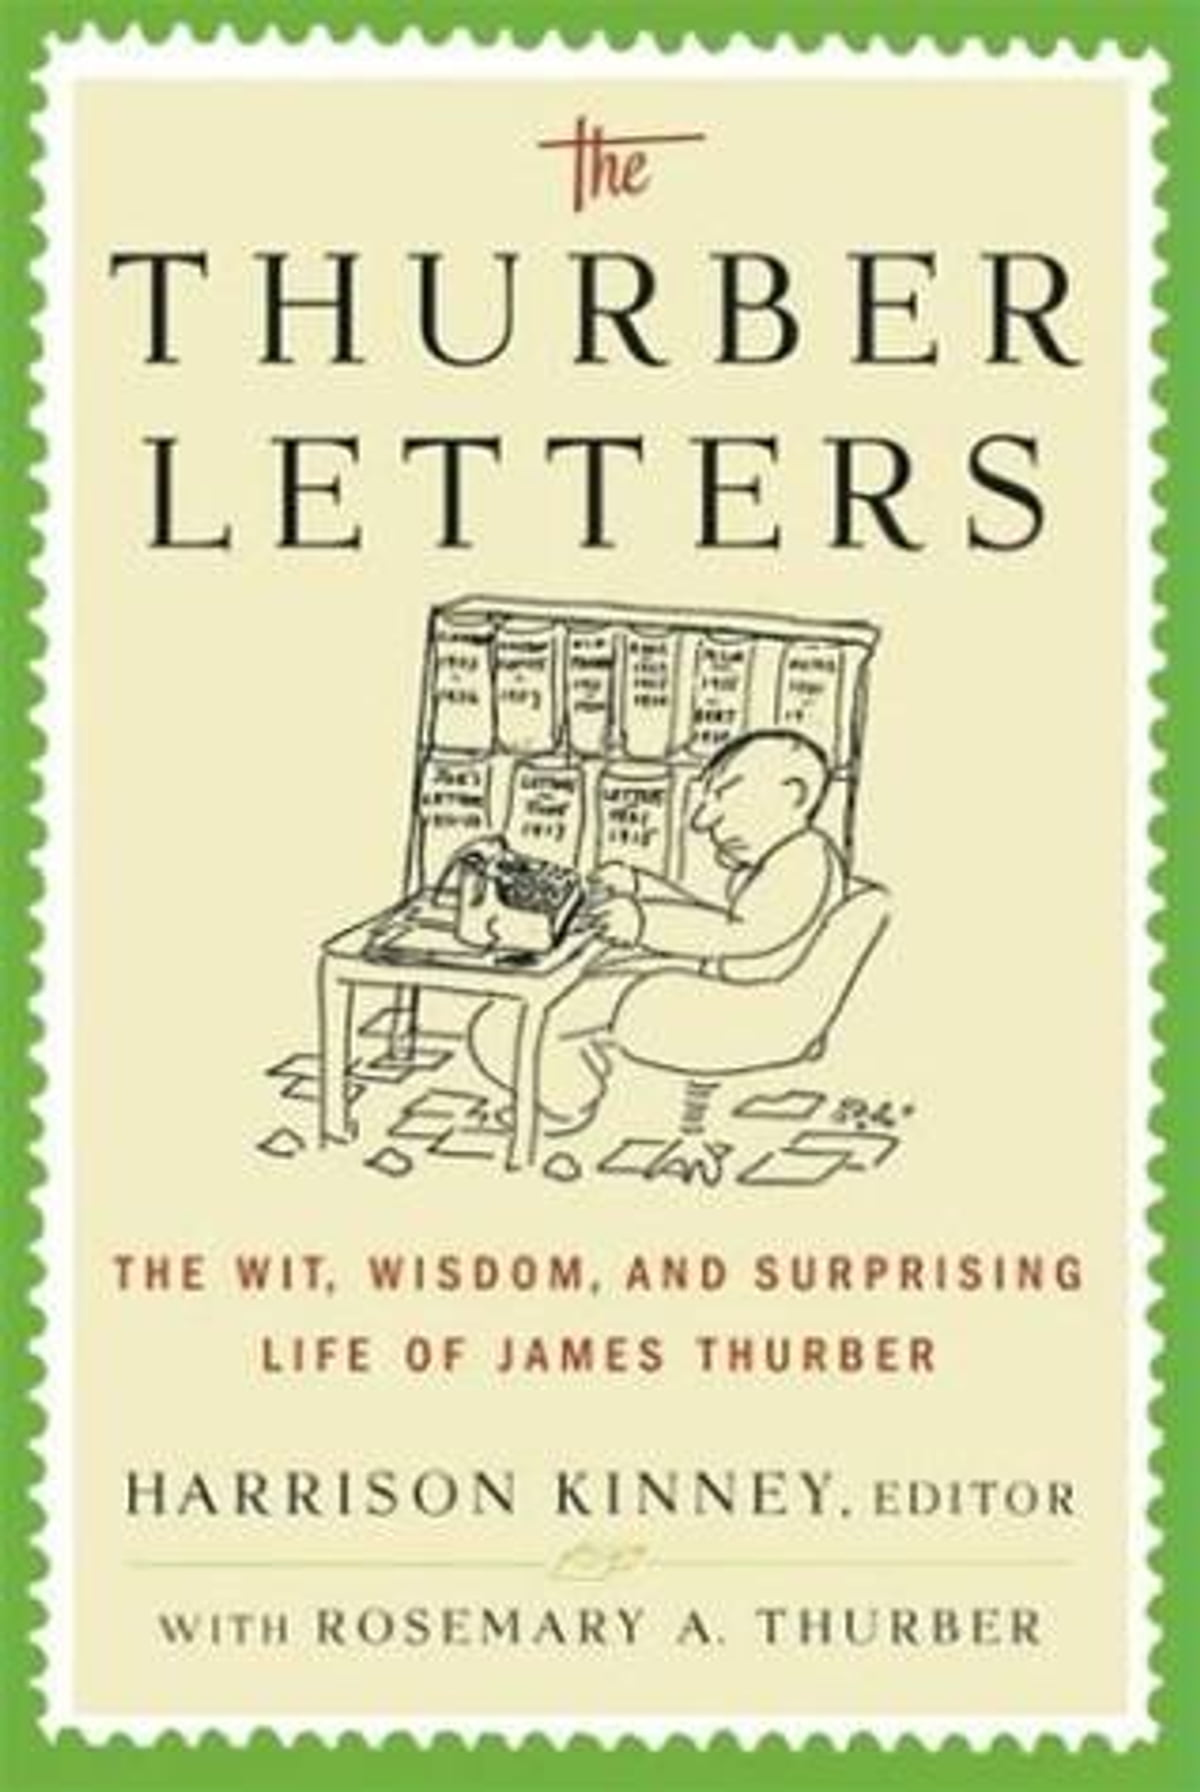 Essay About Business The Thurber Letters Ebook By Harrison Kinney    Rakuten Kobo Science And Technology Essay also Interesting Essay Topics For High School Students The Thurber Letters Ebook By Harrison Kinney    Marriage Essay Papers